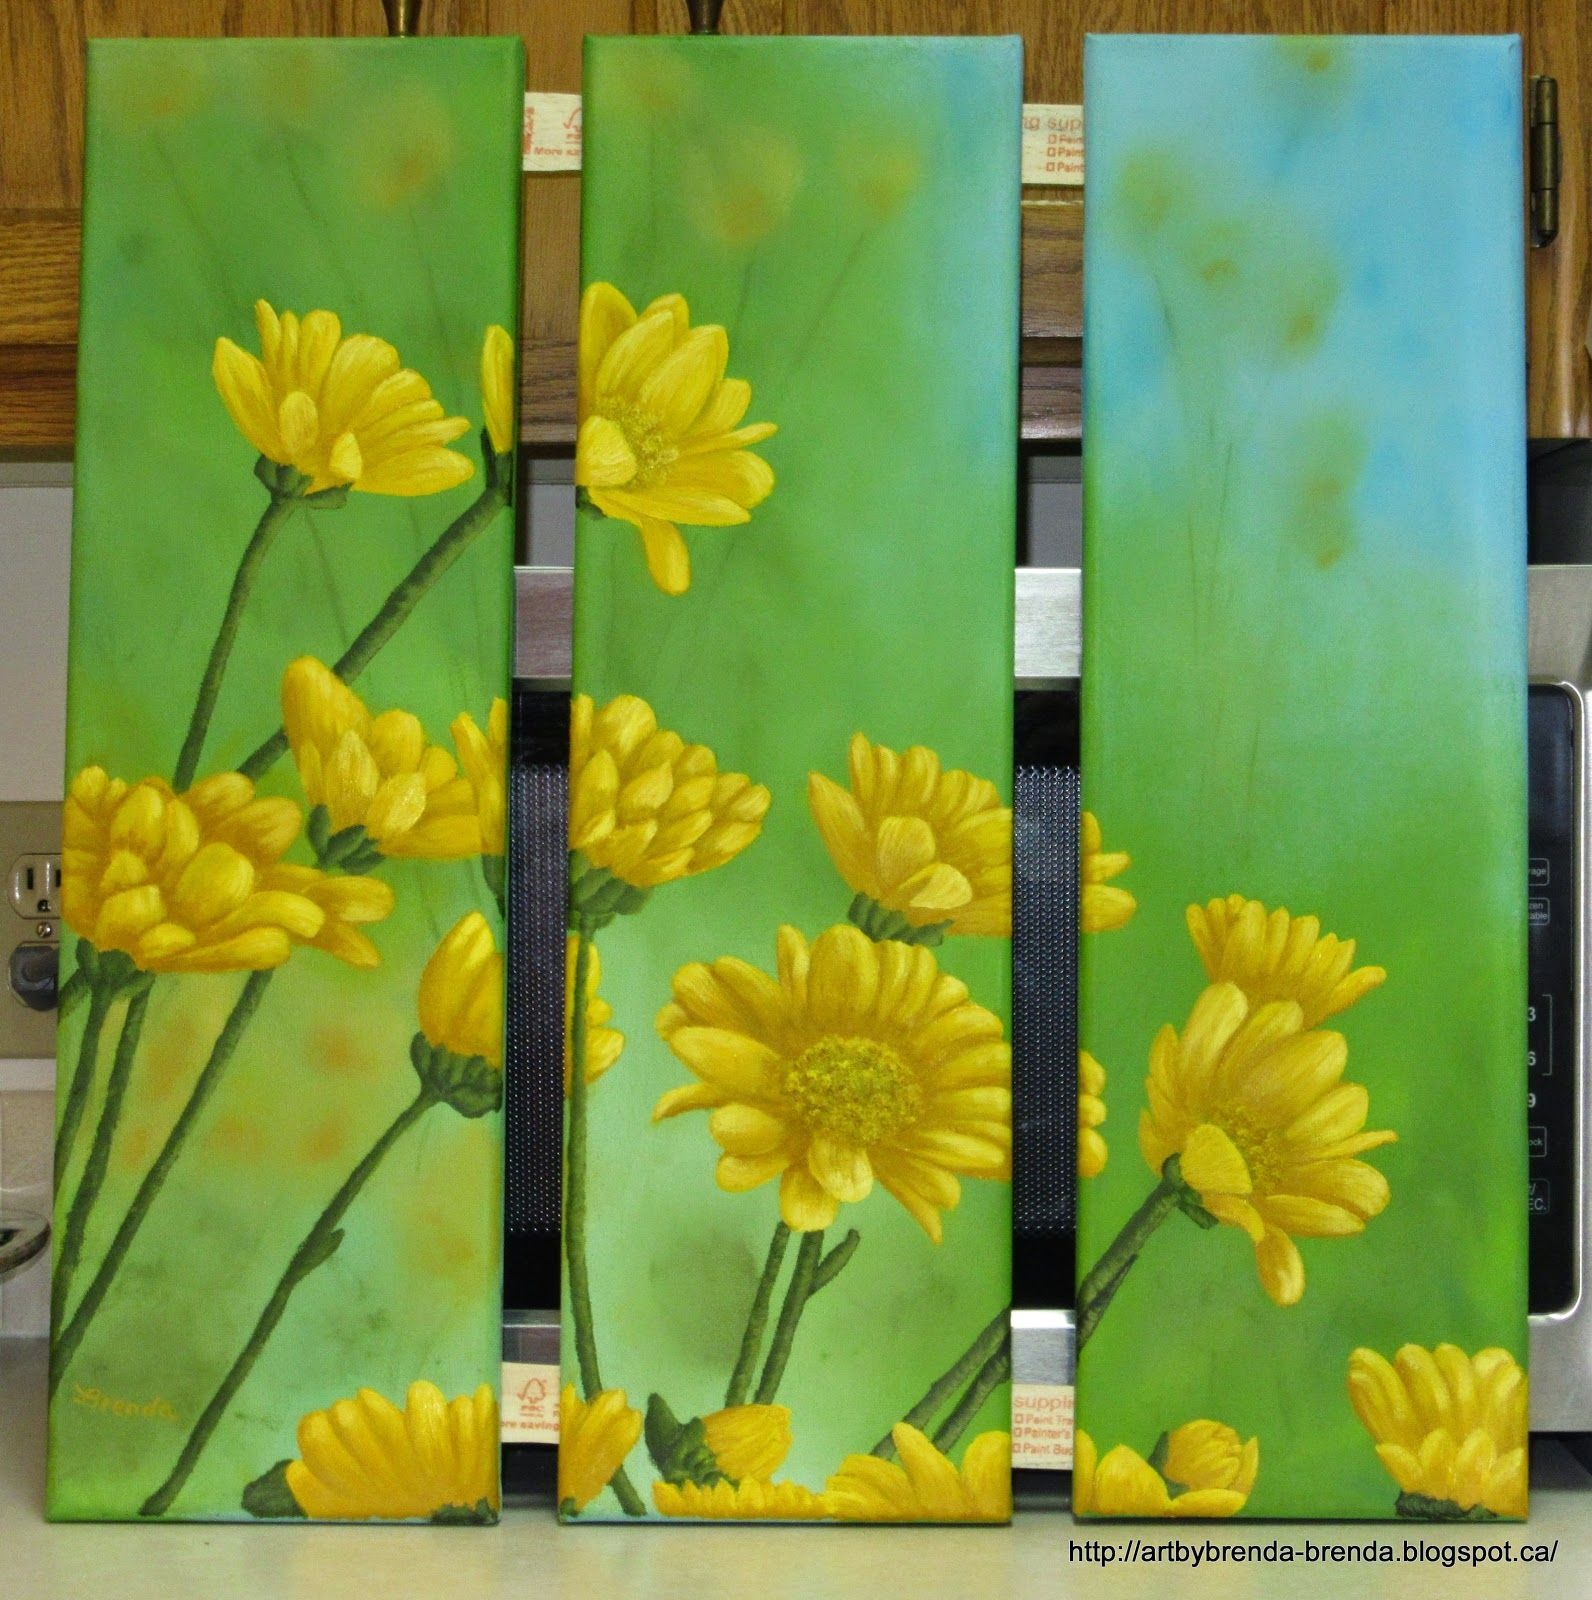 My latest painting. Triptych, 3 panels each 6 x 20 inches. Title: Yellow Daisies Oil on canvas Size: 3 panels 6 x 20 inches each. These are usually hung with a small space in between them. For Sale: $ 110.00 CAD, unframed, plus shipping